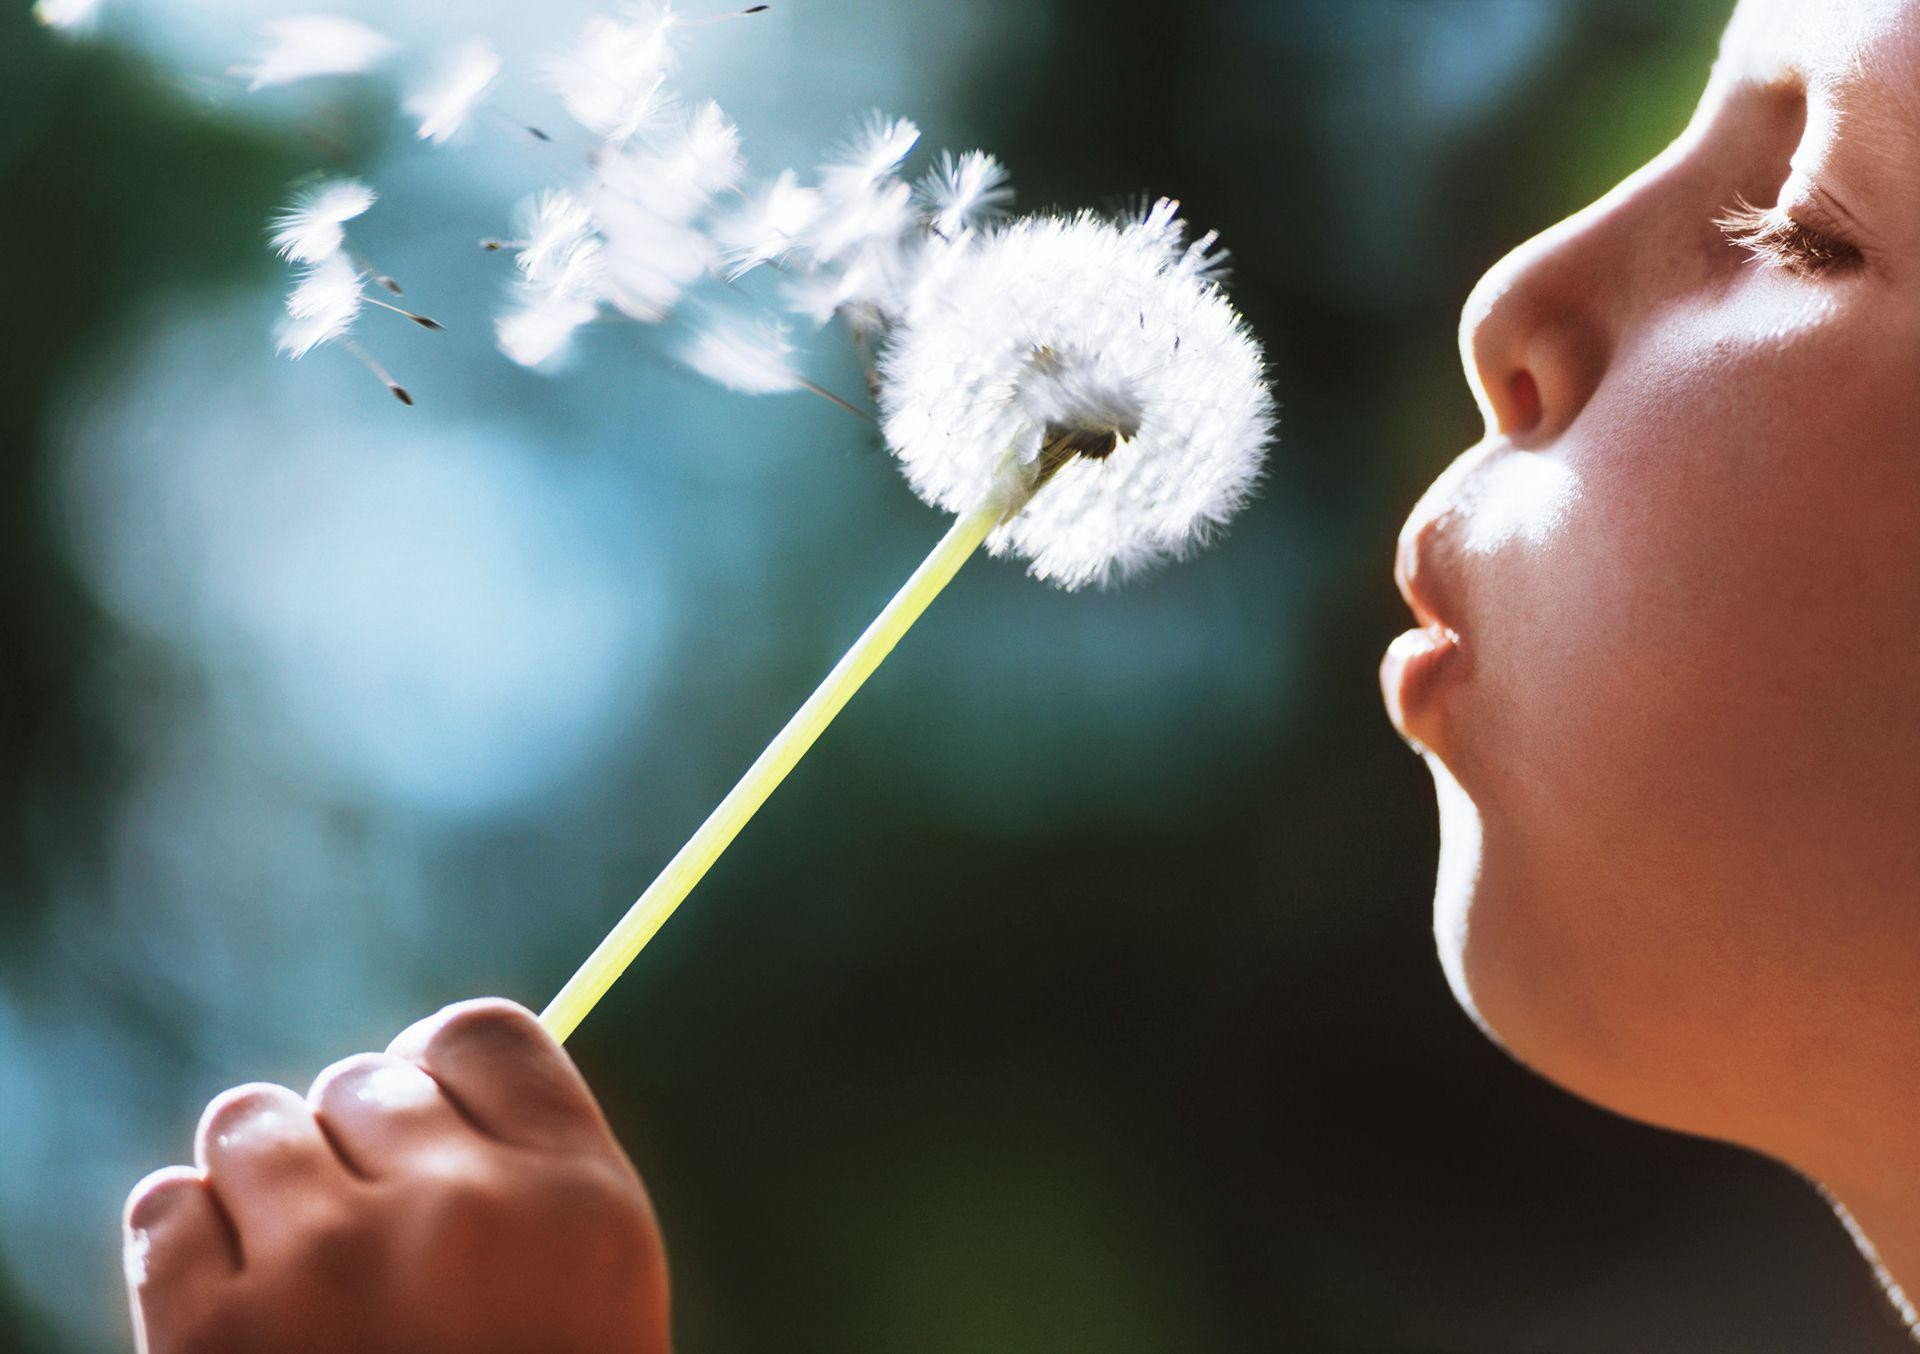 child-boy-blowing-dandelion-plant